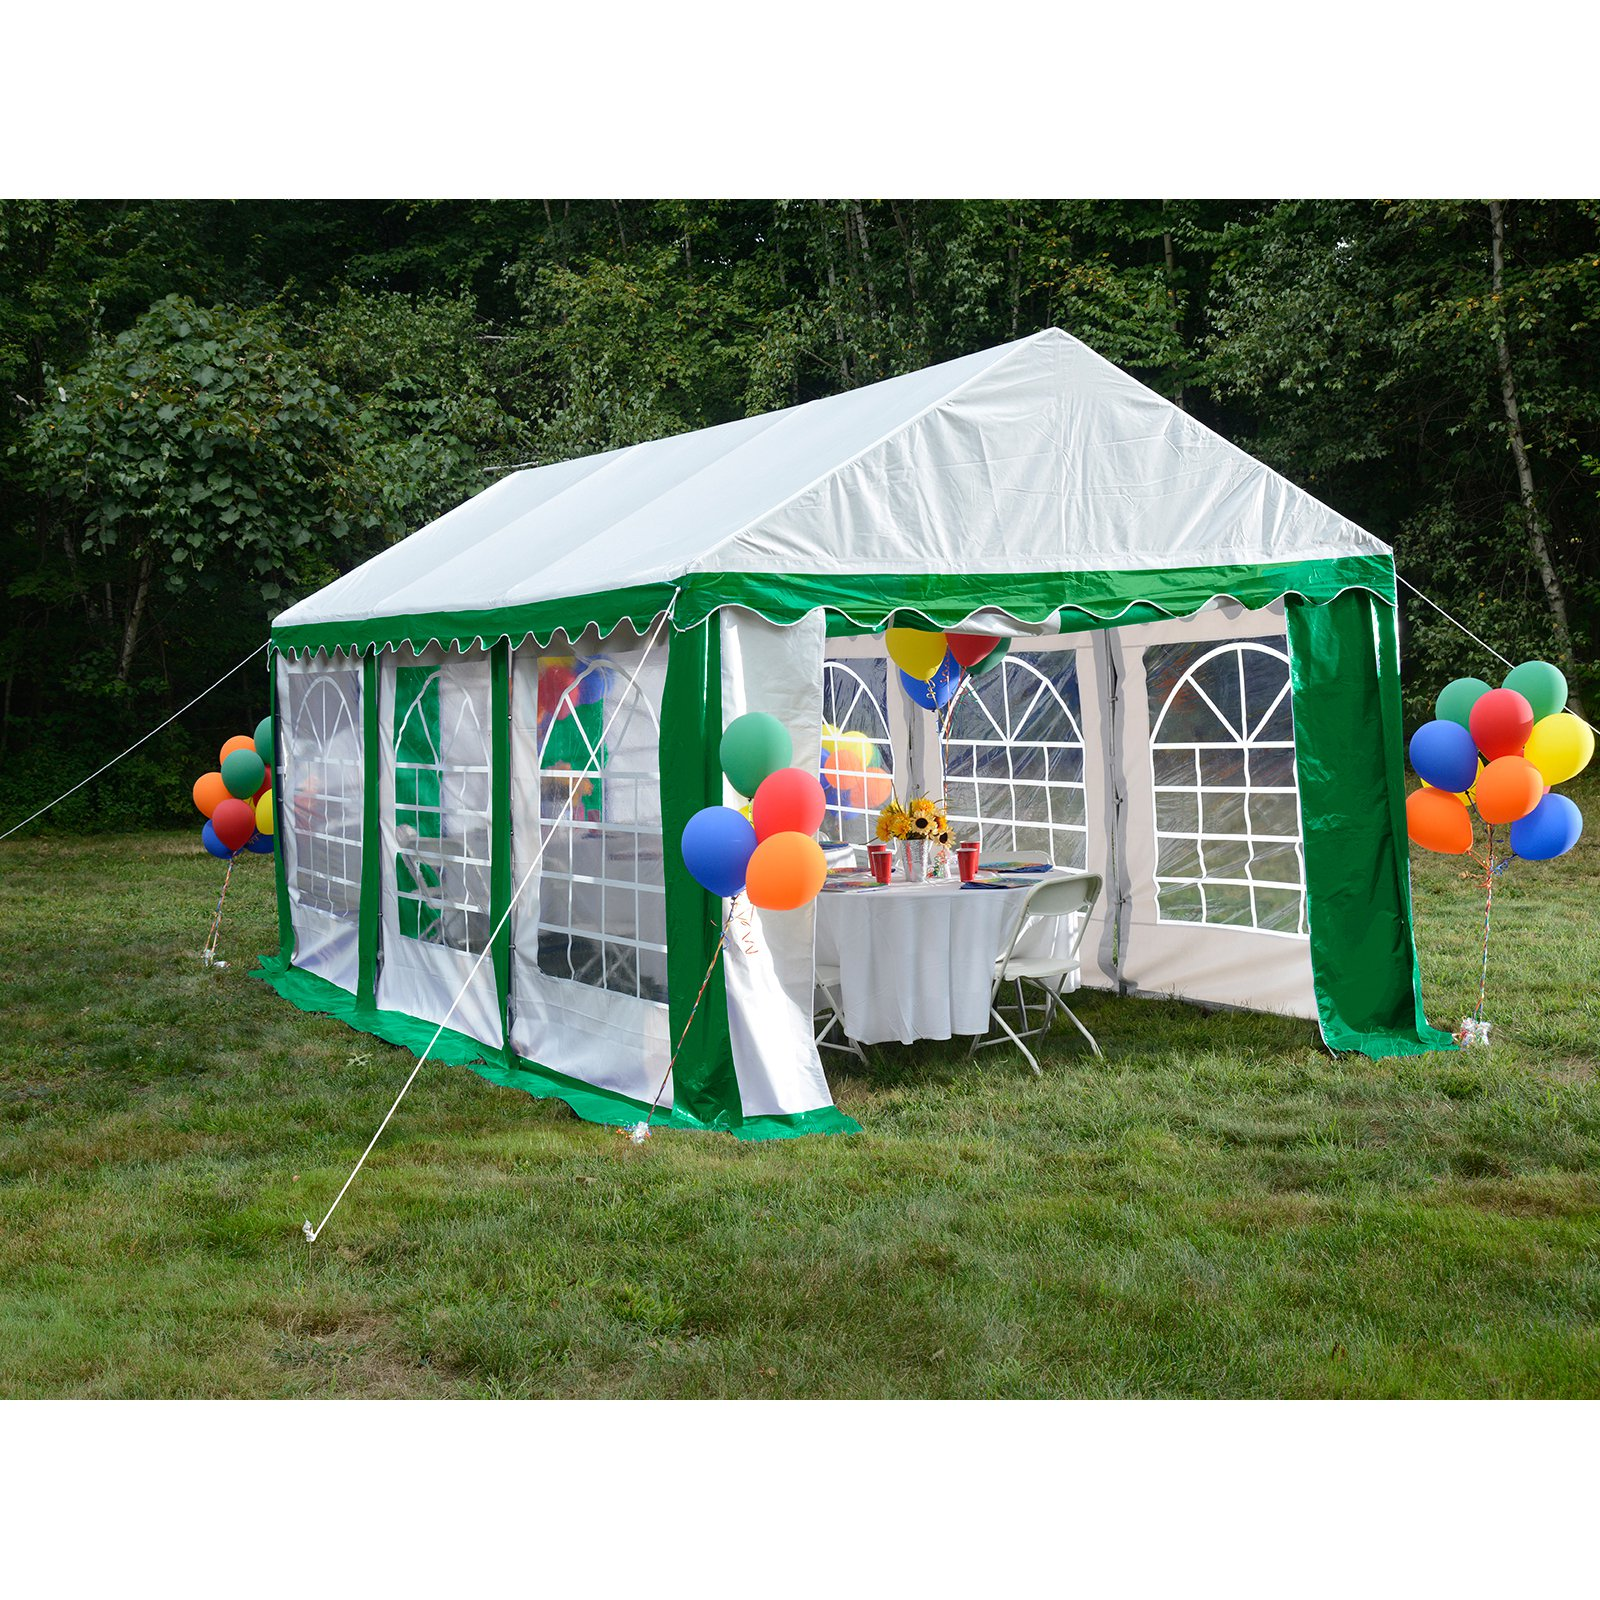 Enclosure Kit with Windows for Party Tent